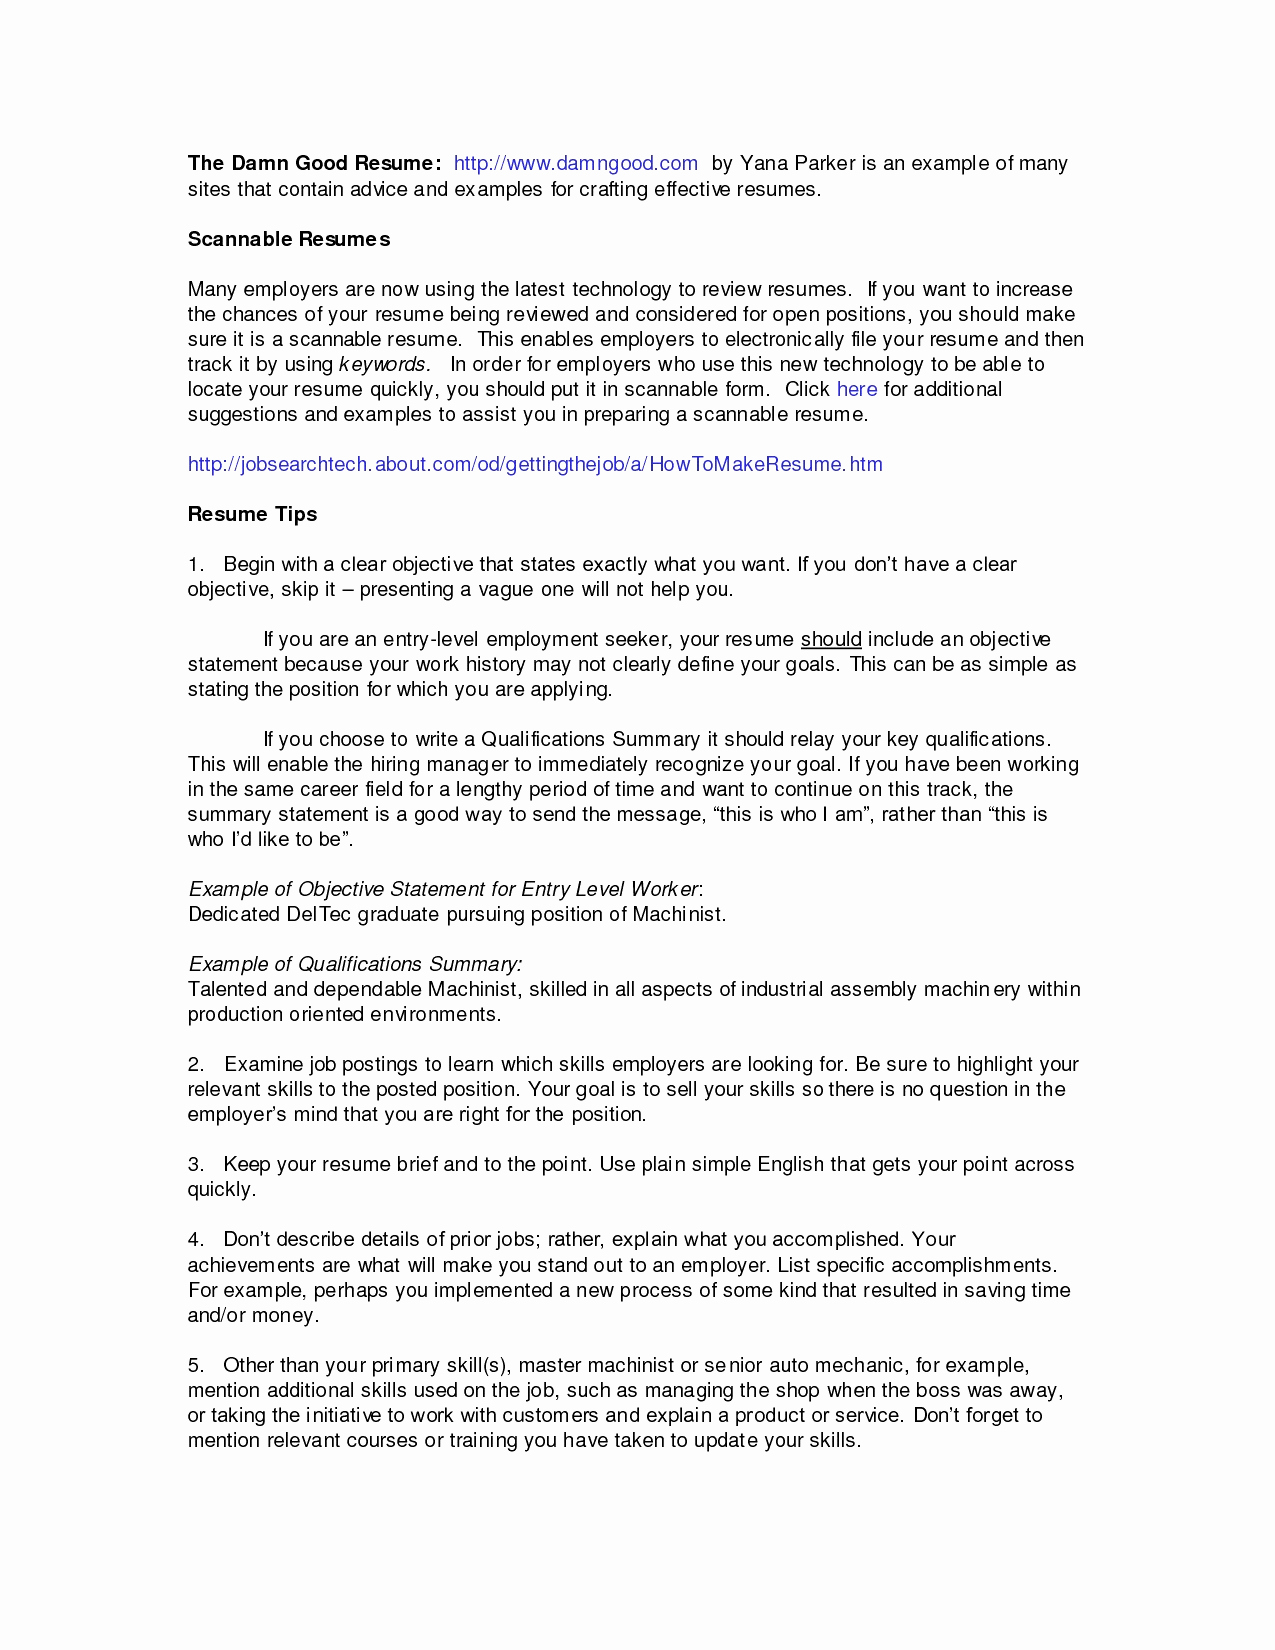 Medical Coding Resume Examples - Medical Coding Resume Examples 20 Medical Coder Resume Samples